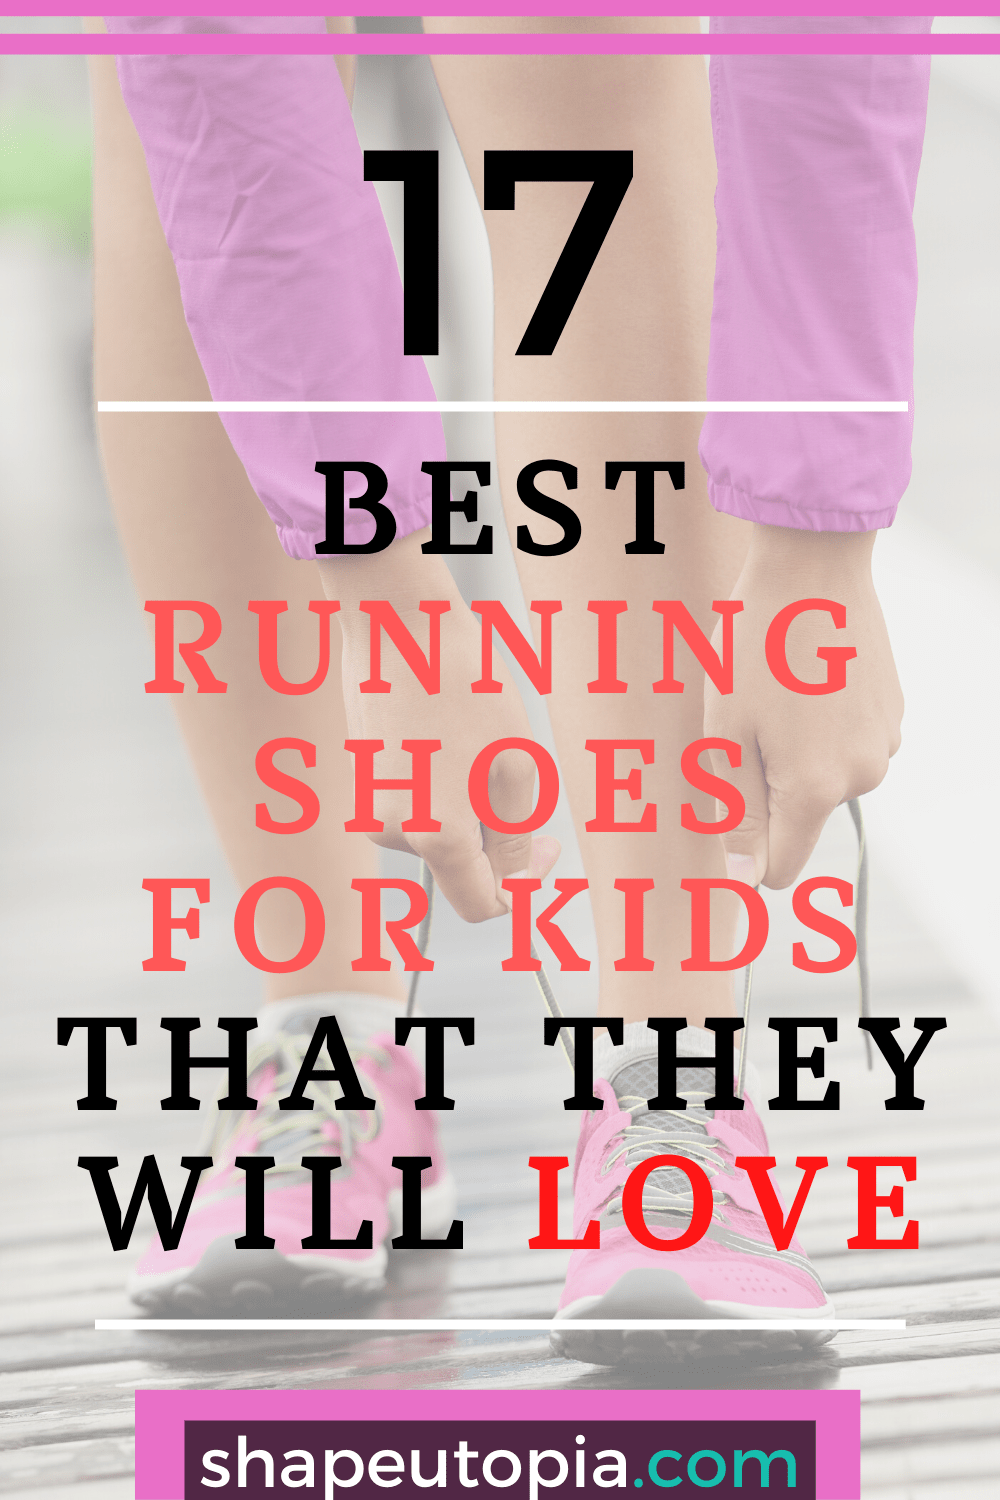 17 Best Running Shoes for Kids That They Will Love